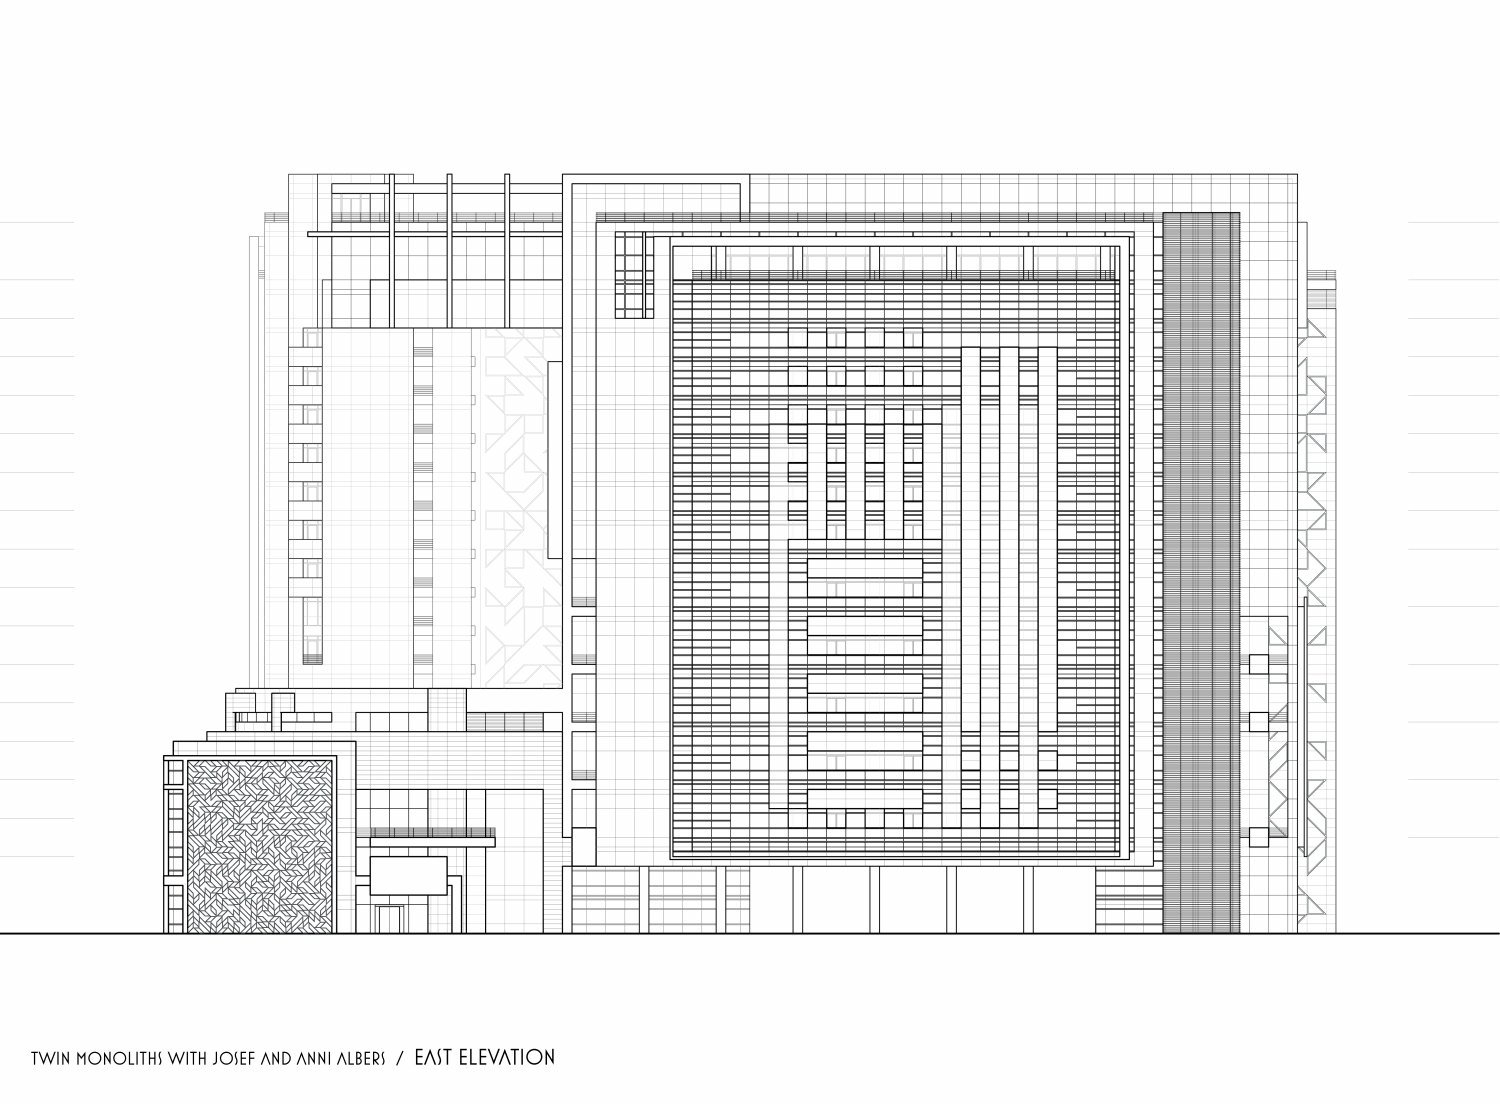 francesco visalli josef and anni albers project twin monoliths east elevation iosef and anni albers